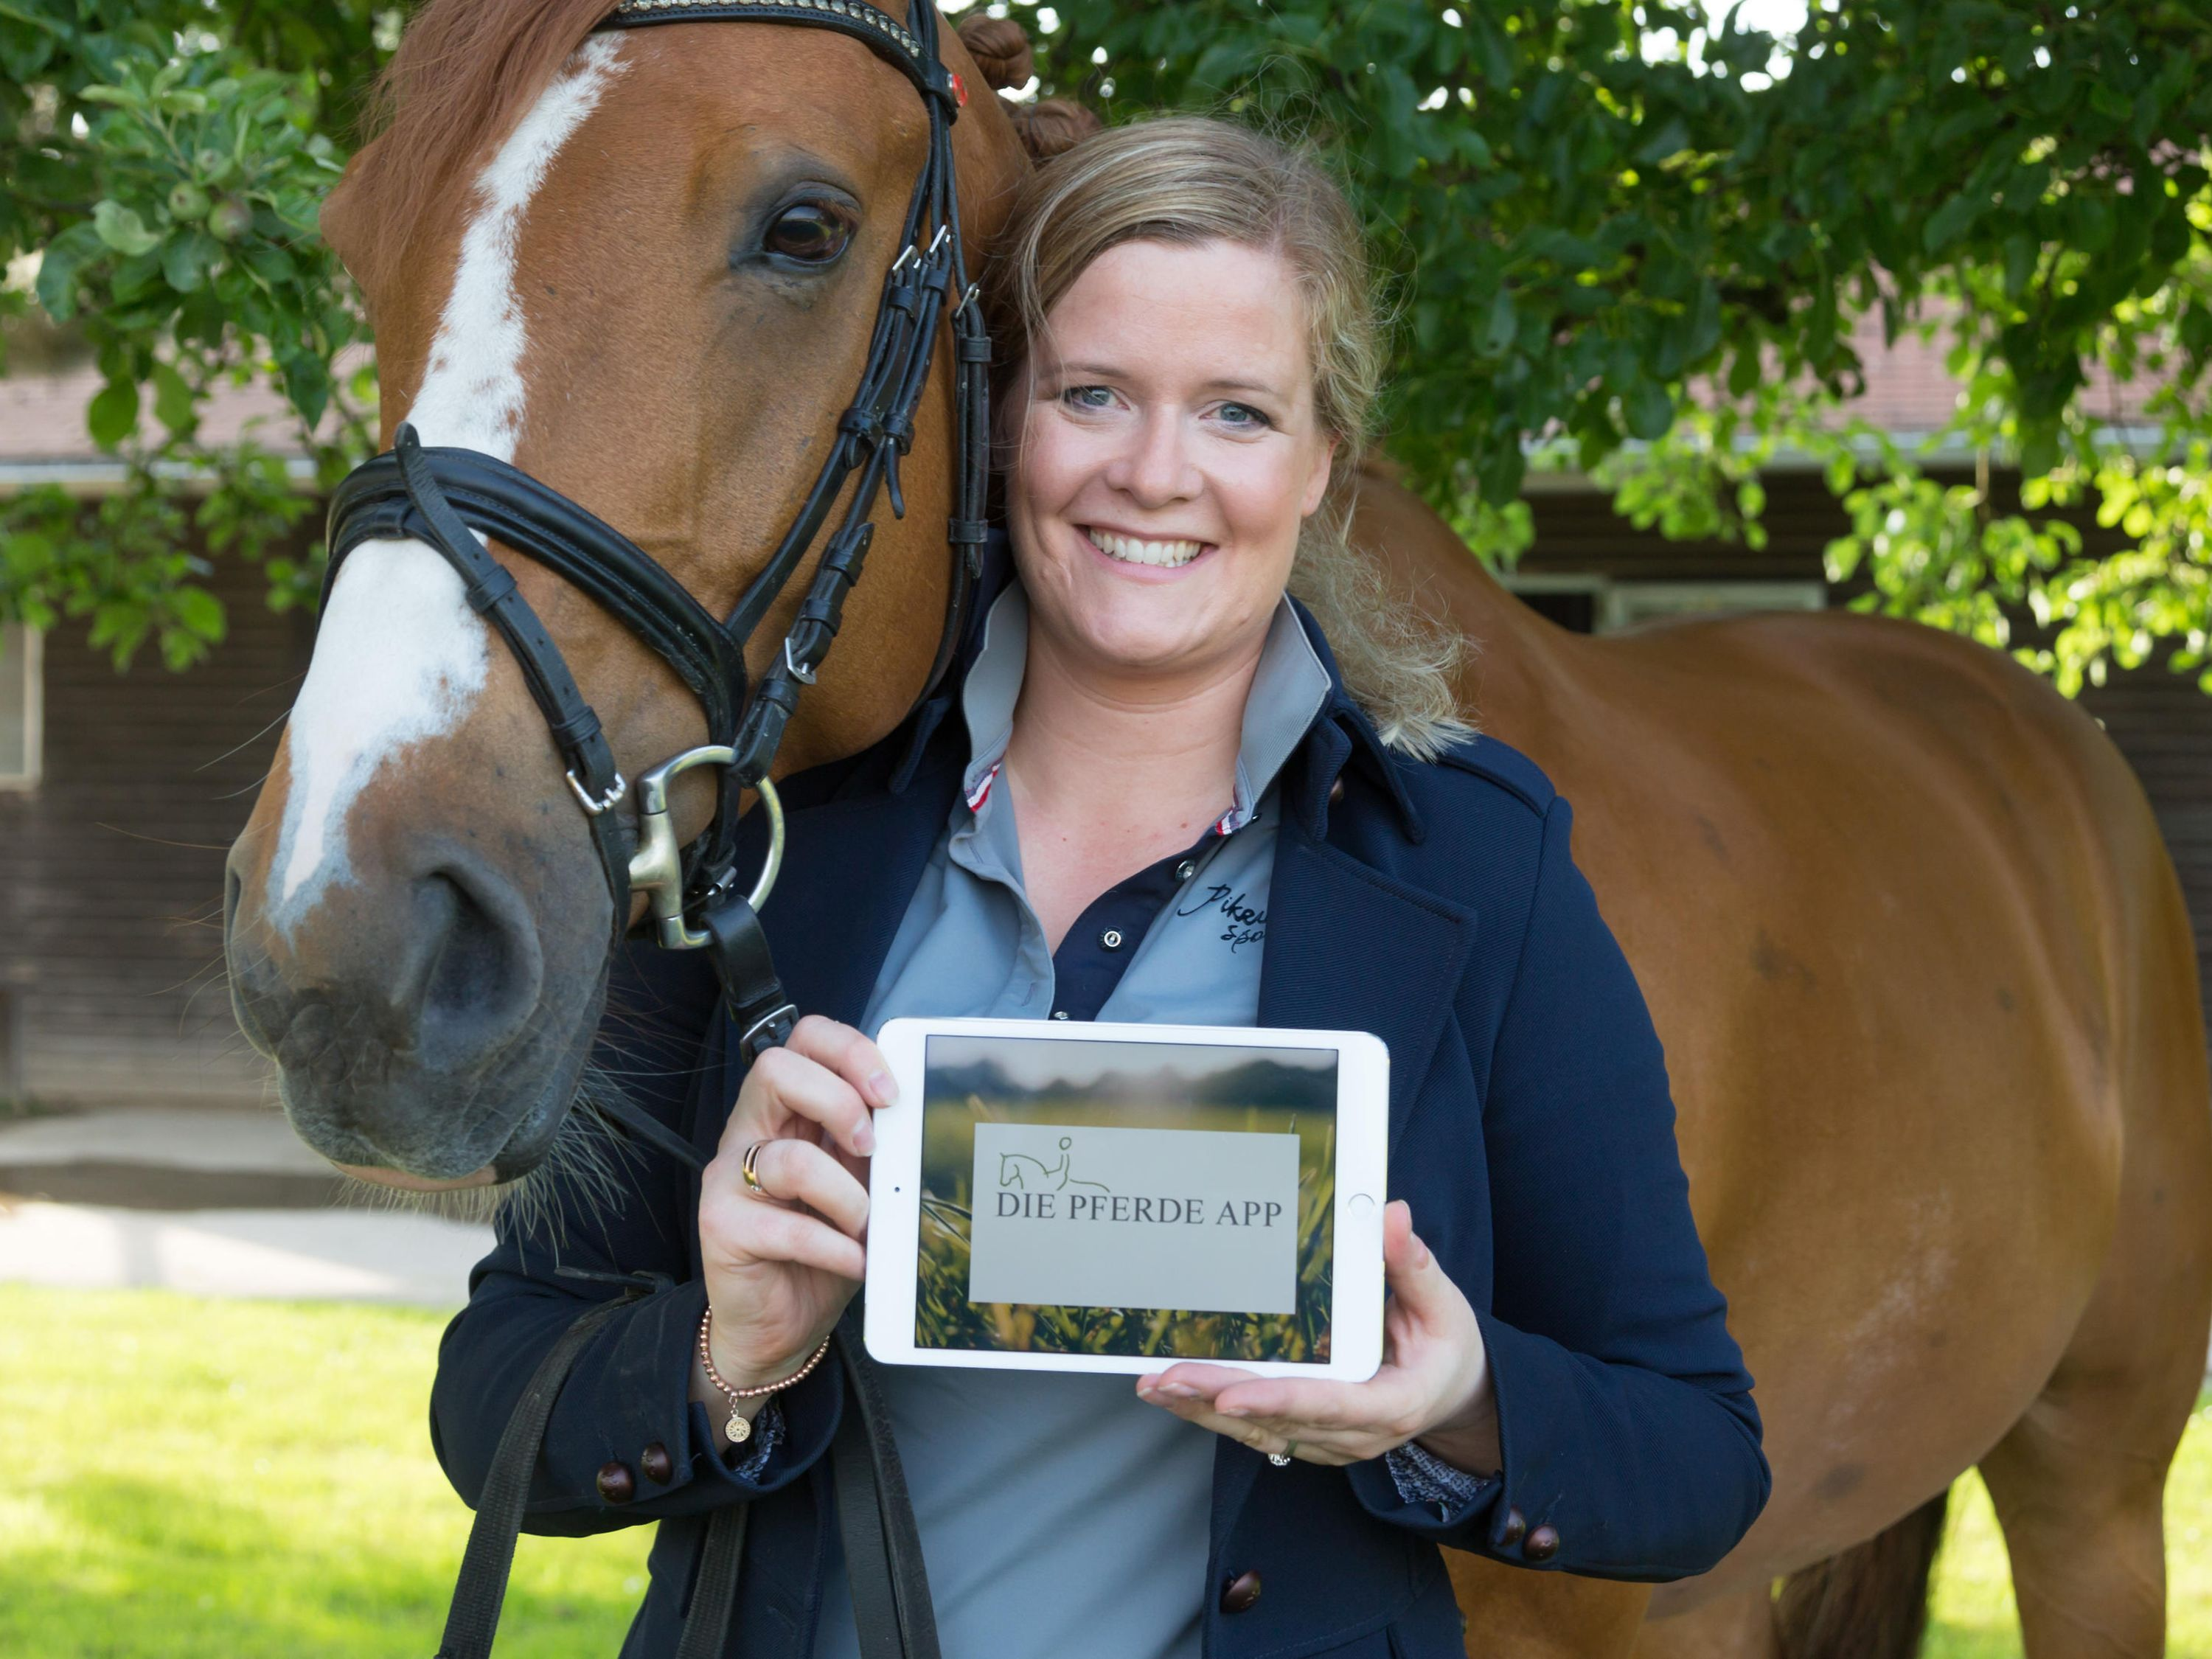 Christina Terbille and her horse Flo. The tablet is displaying her prototype app on screen.